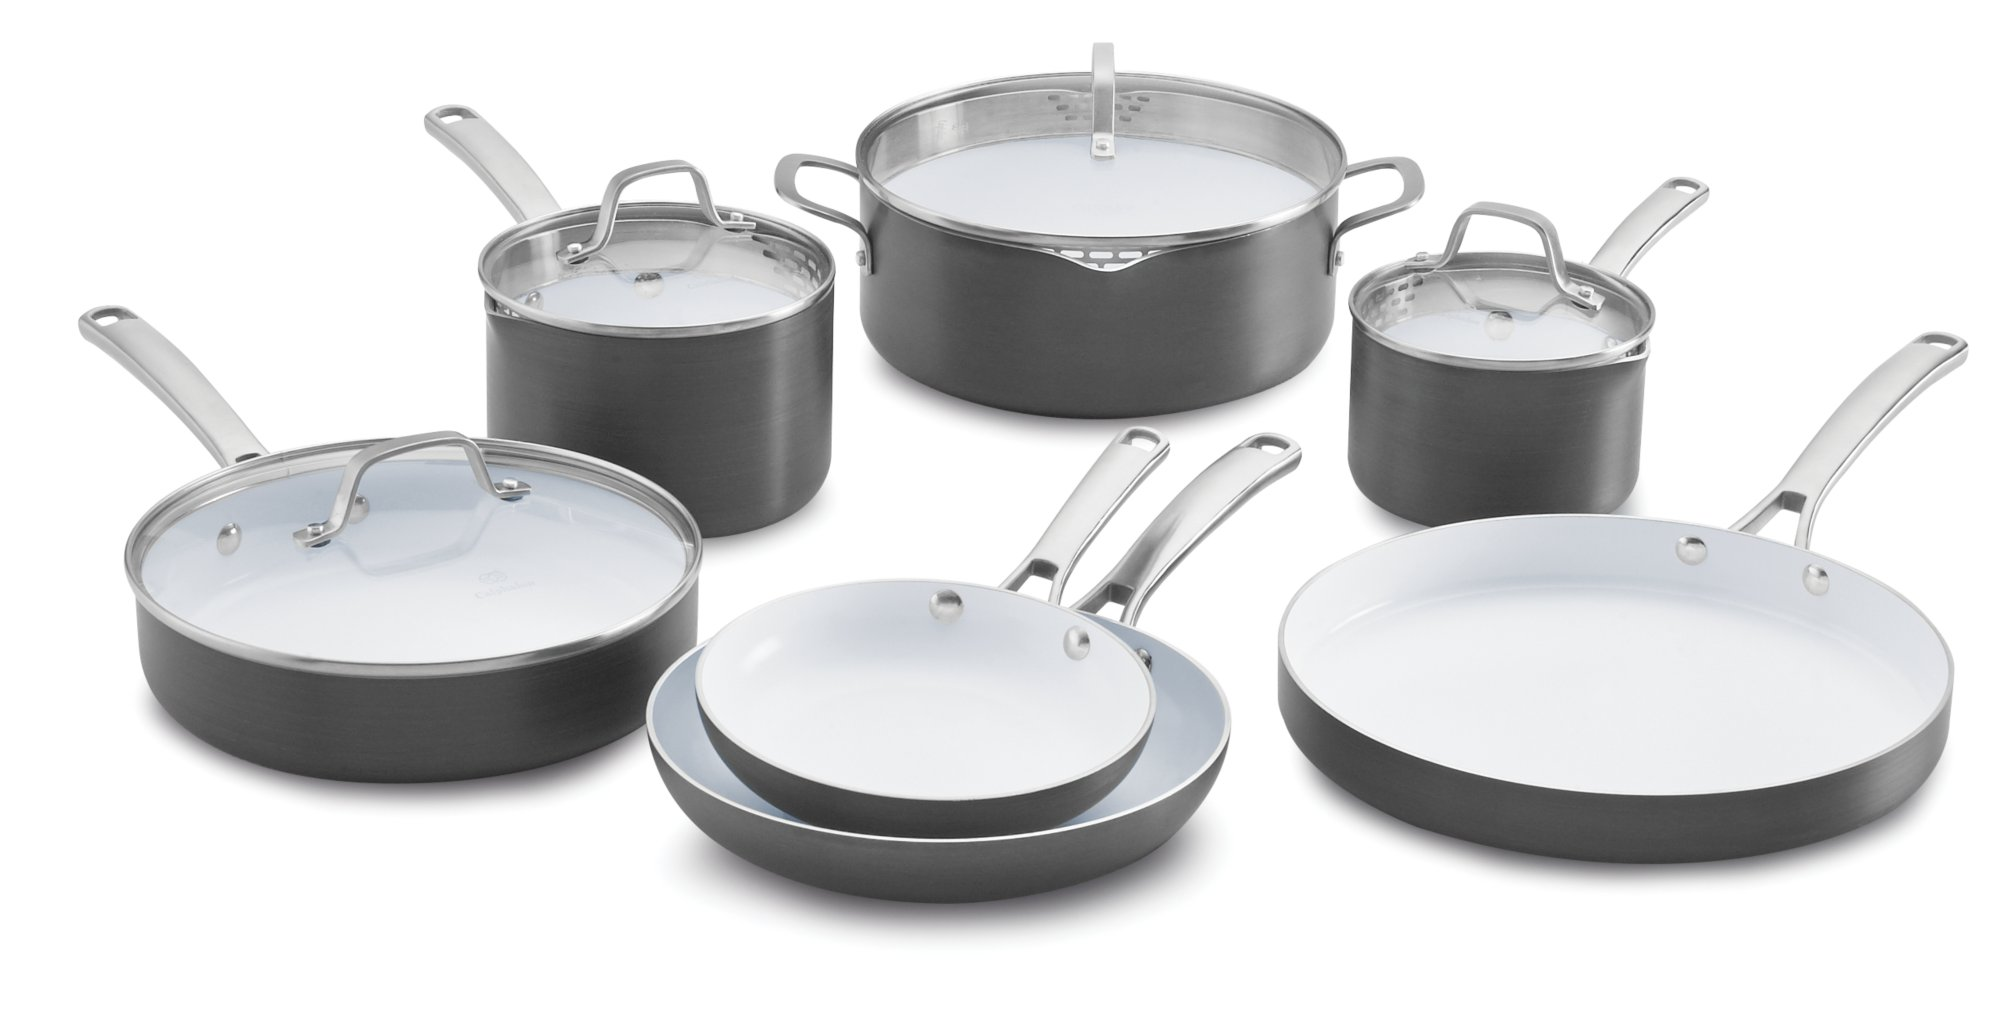 Cookware Sets, Pots and Pans Sets